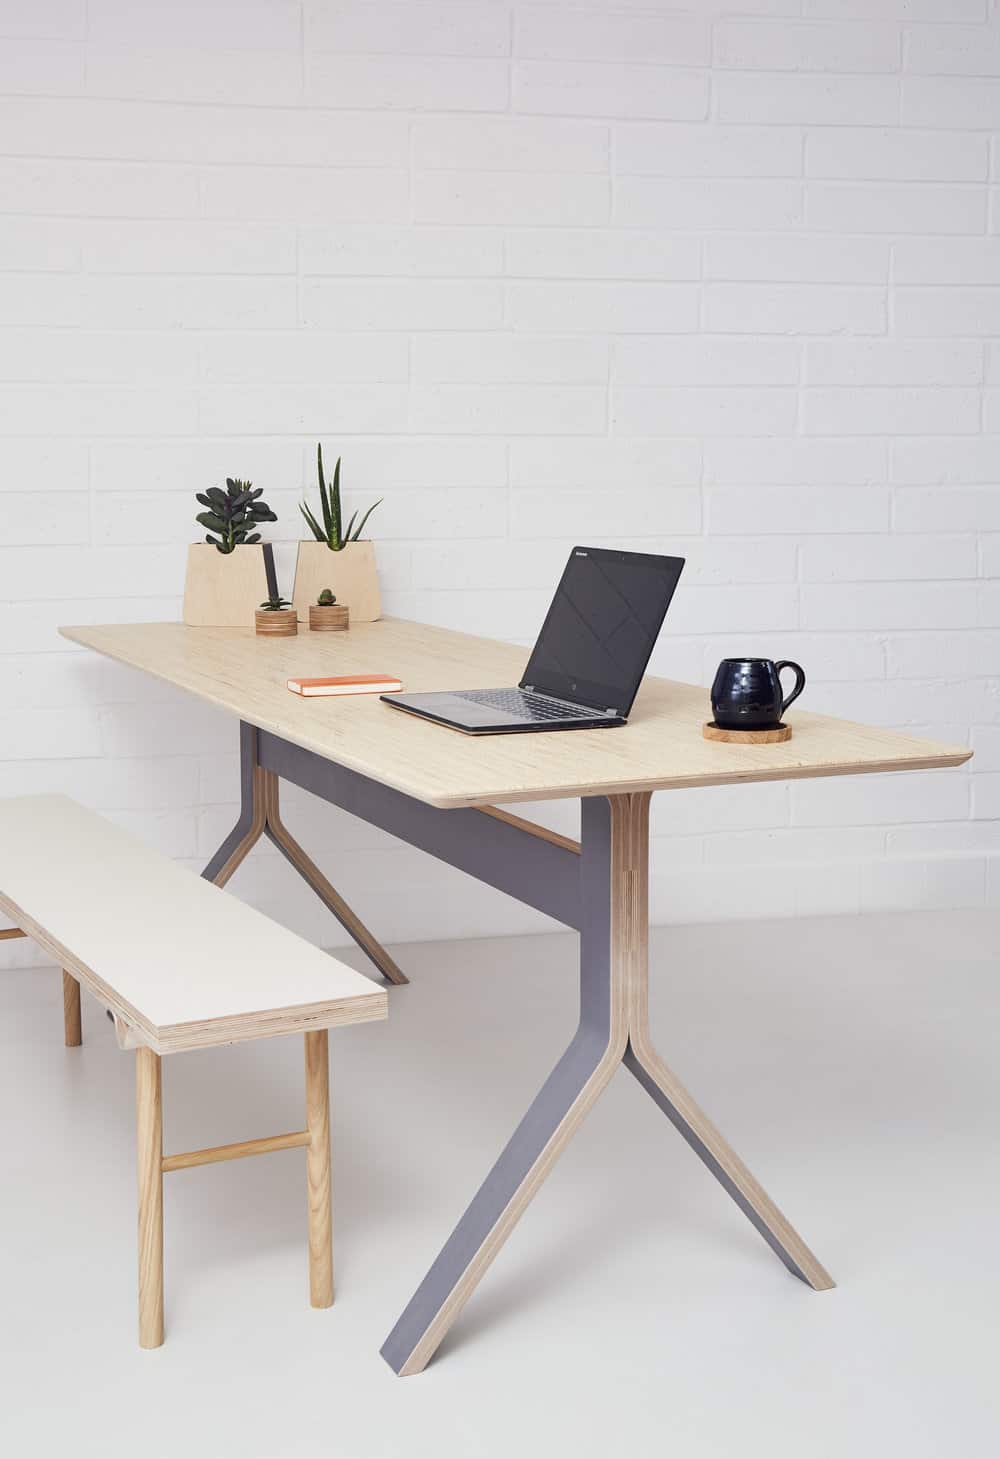 office plywood table with a computer